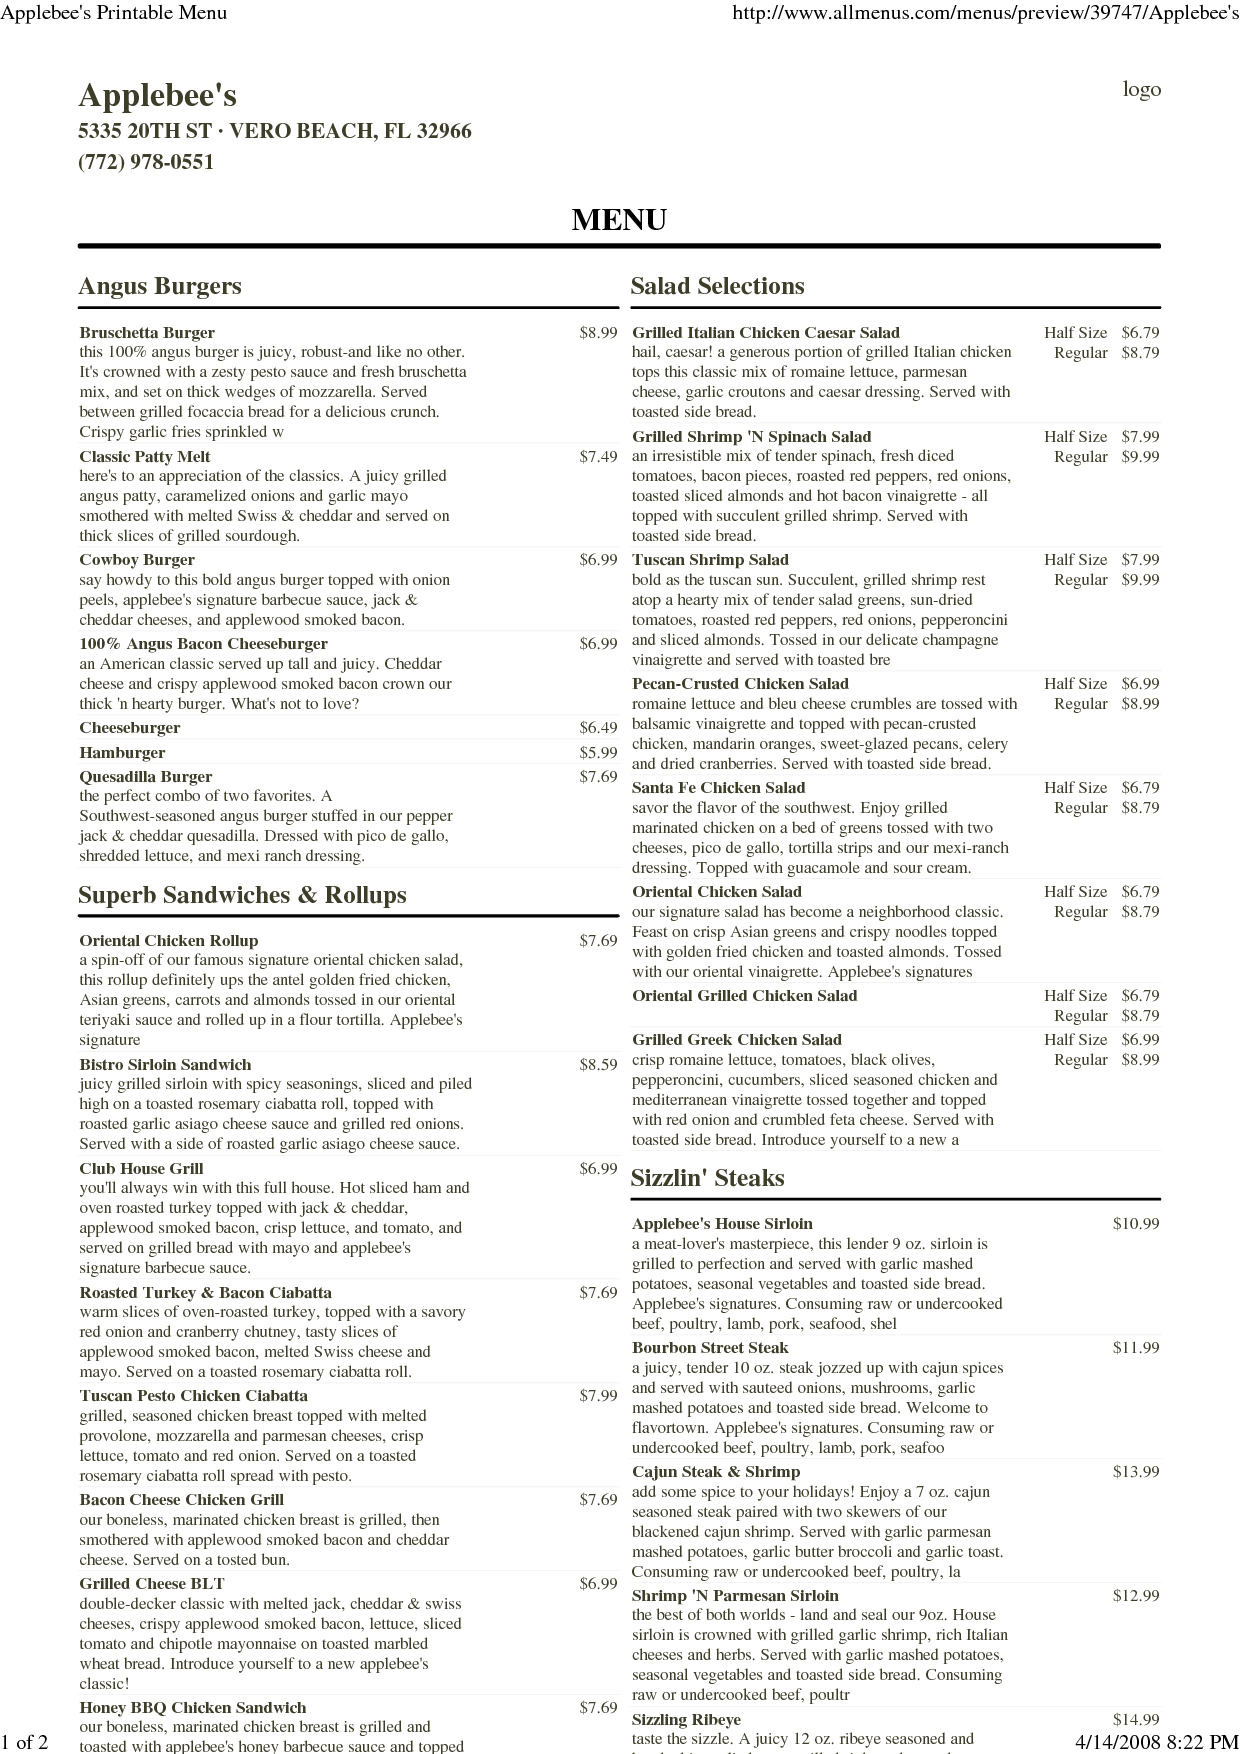 Printable Applebee's Menu